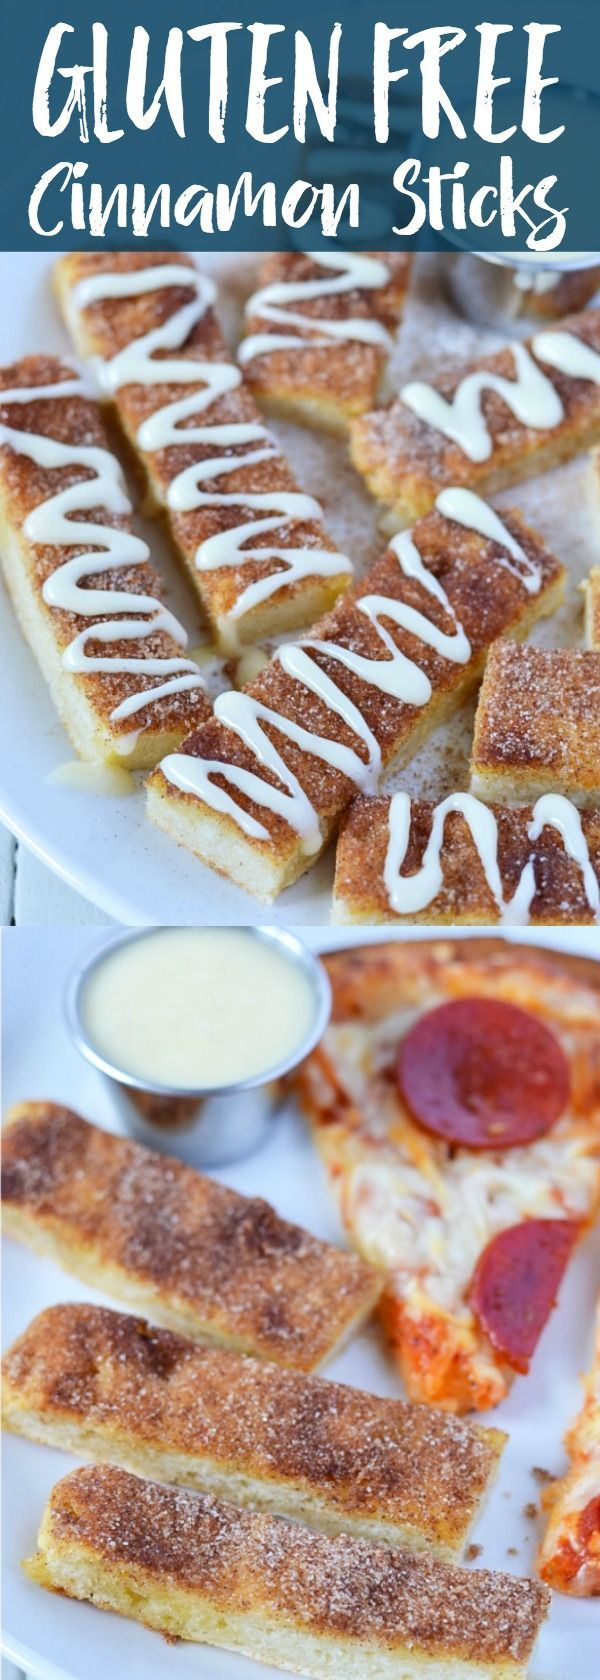 Gluten Free Cinnamon Sticks with the most addicting cream cheese icing for dipping and drizzling. (gluten free and dairy free) Recipe from @whattheforkblog | whattheforkfoodblog.com